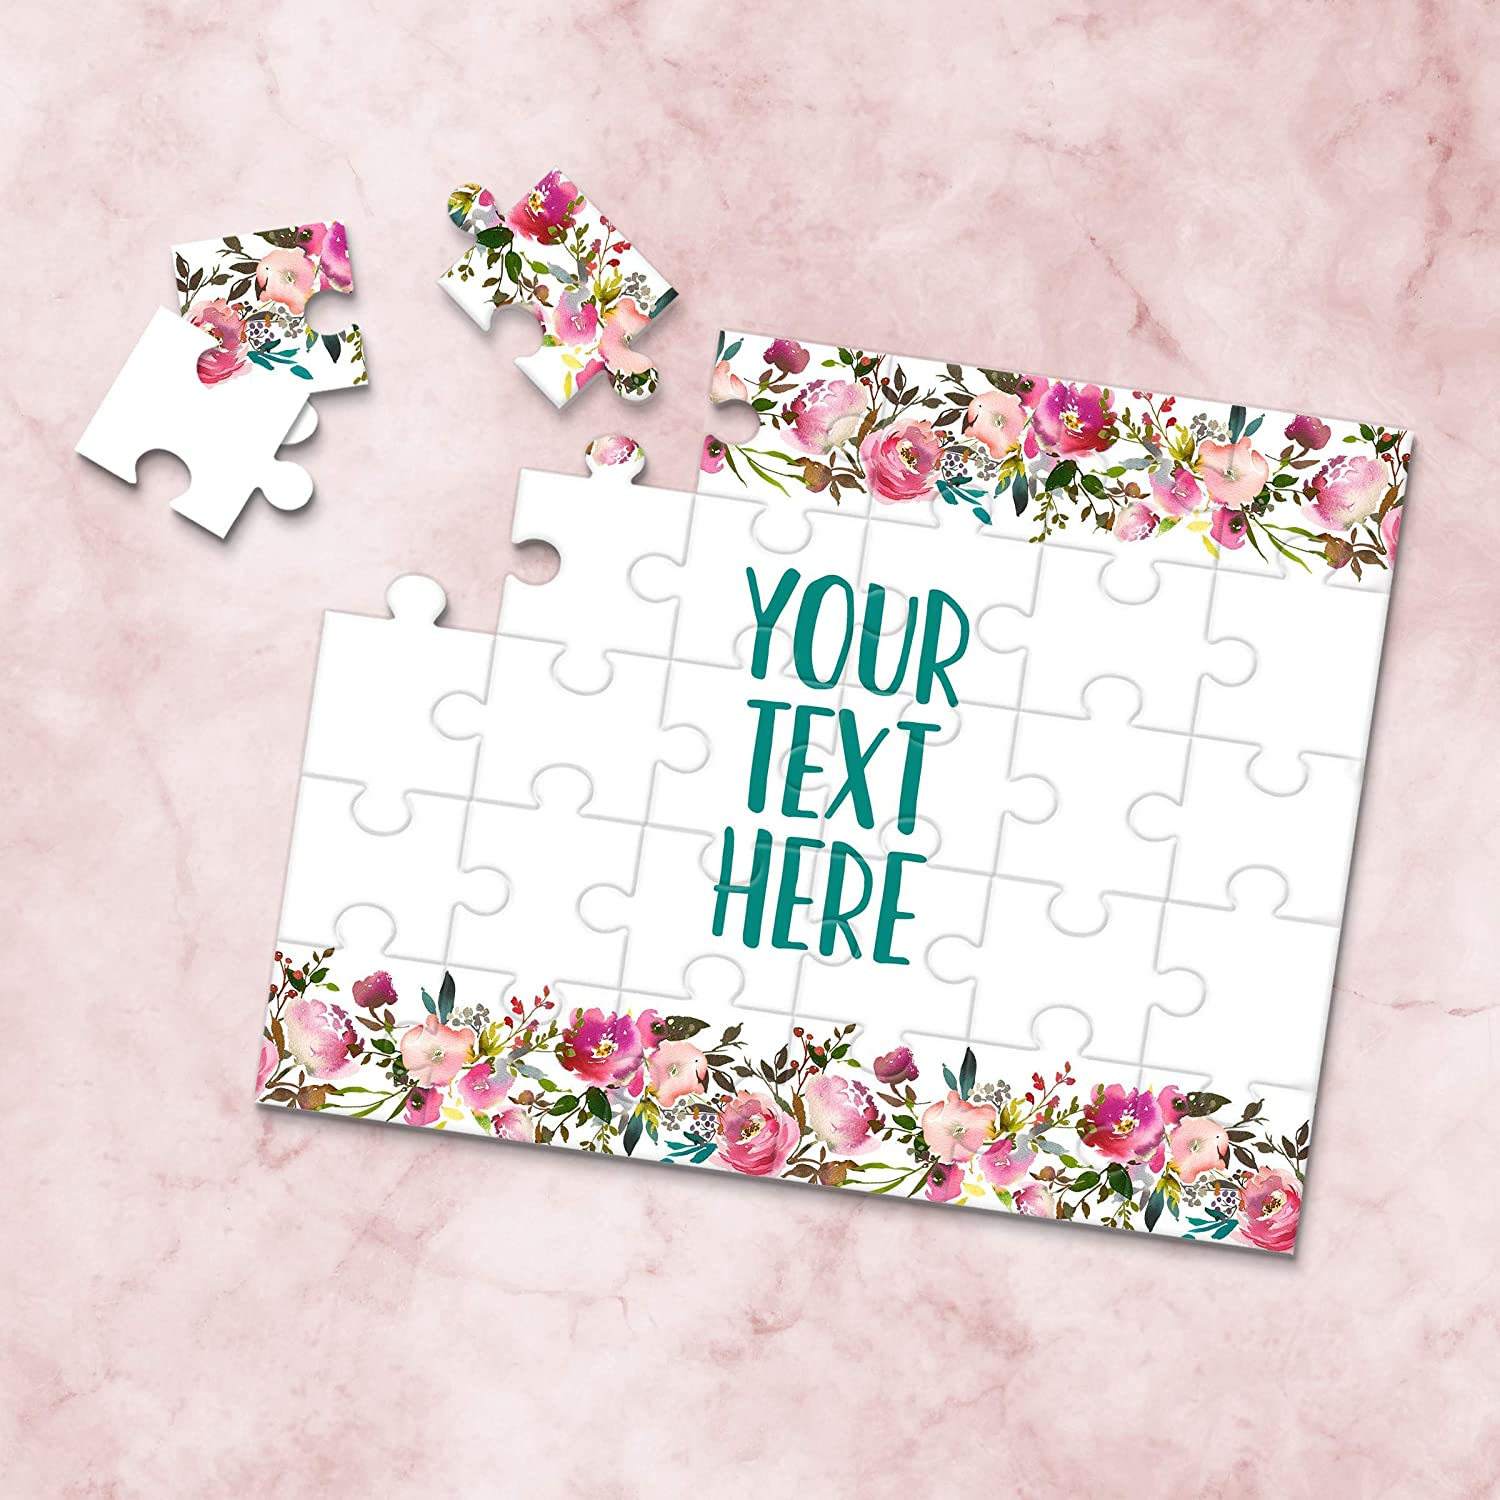 Create Your Own Puzzle CYOP0126 Pregnancy Announcement Personalized Puzzle Custom Puzzle Wedding Announcement Announcement Ideas